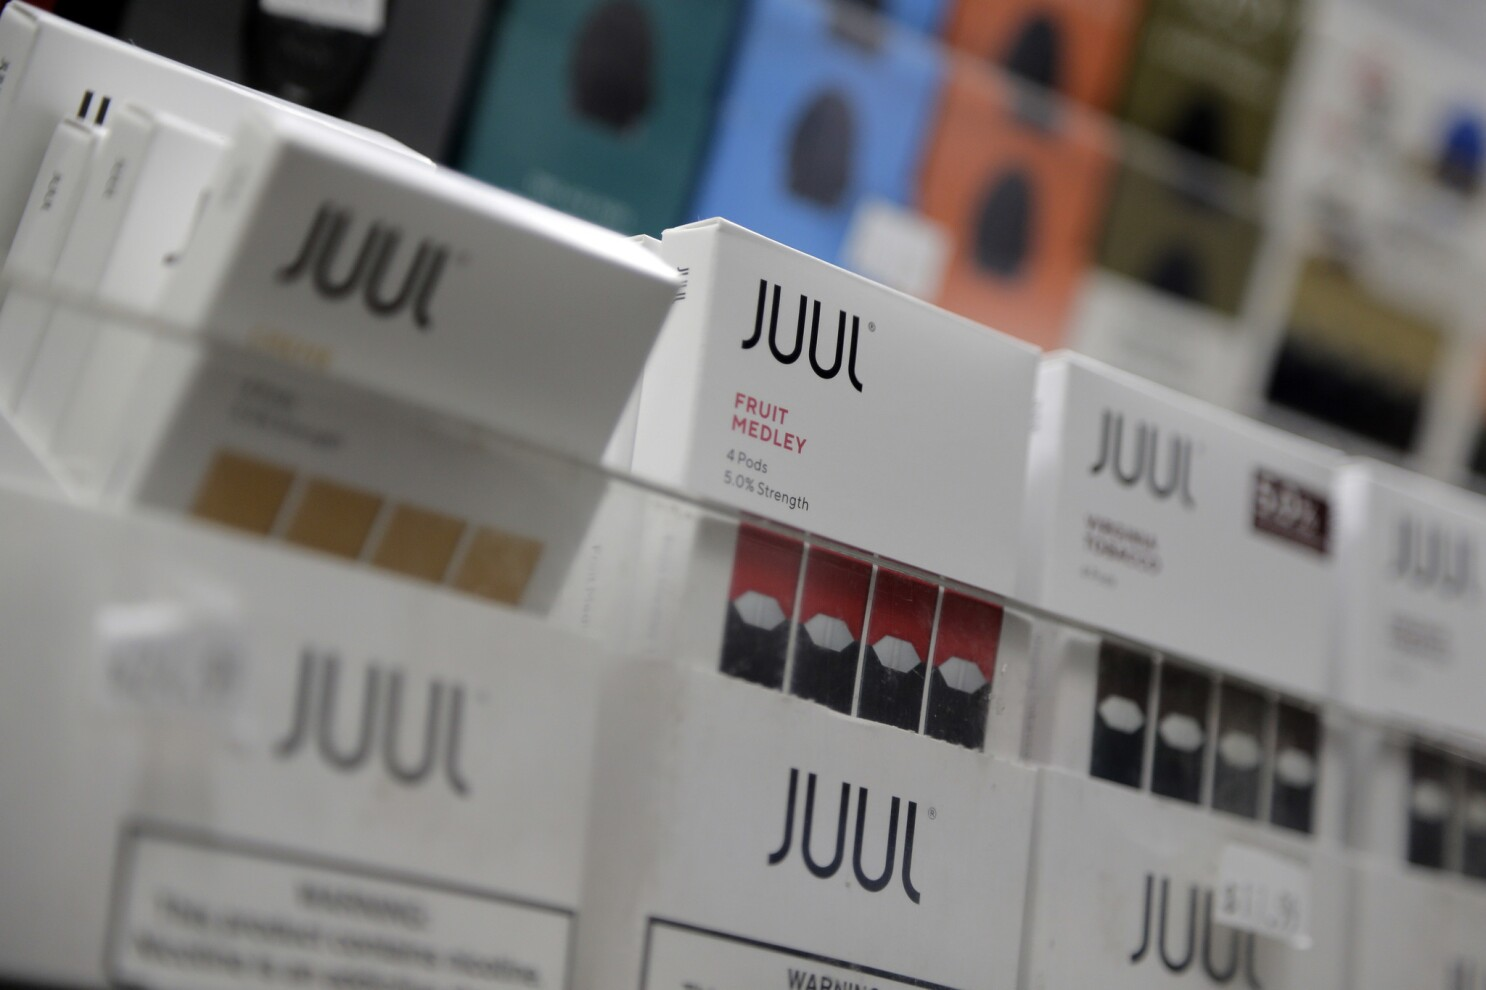 L.A. County to consider ban on sales of flavored tobacco for e-cigarettes